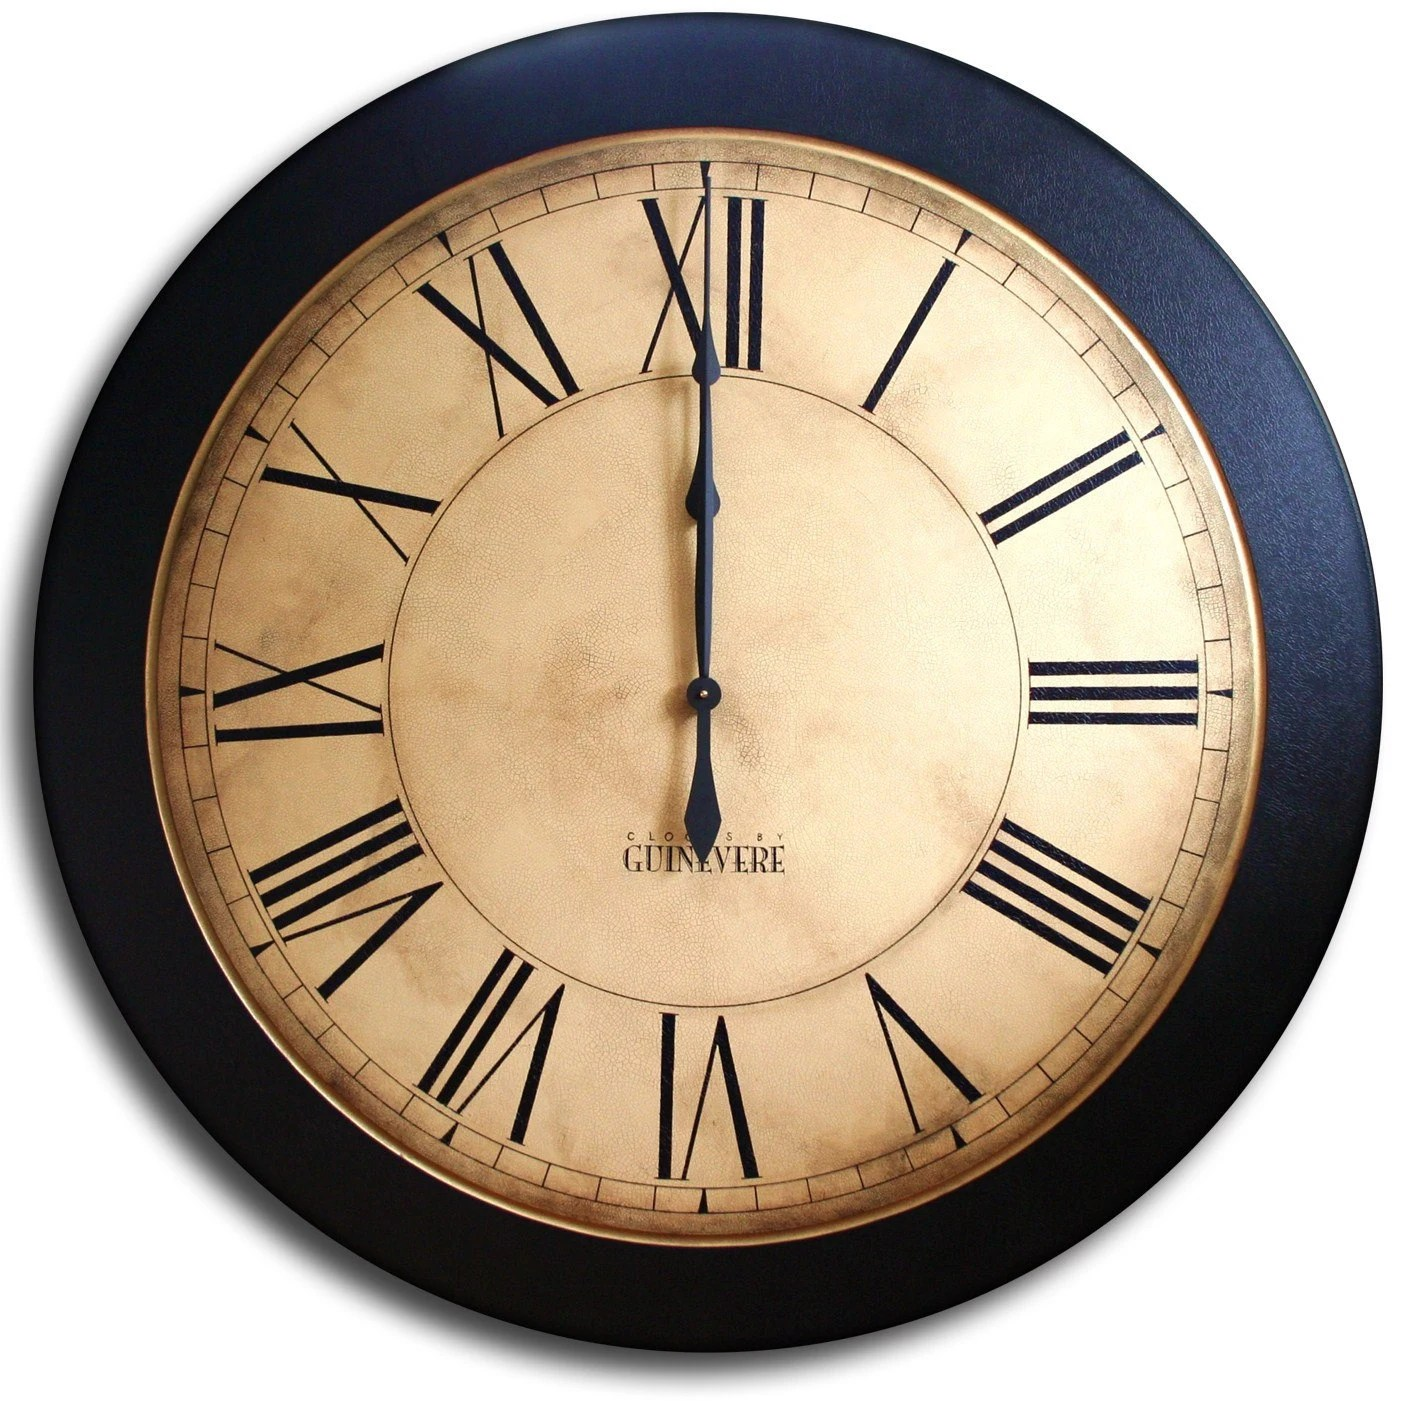 Big Clocks For Wall Large Wall Clock 24in Antique Style Big Round Clocks Whiting